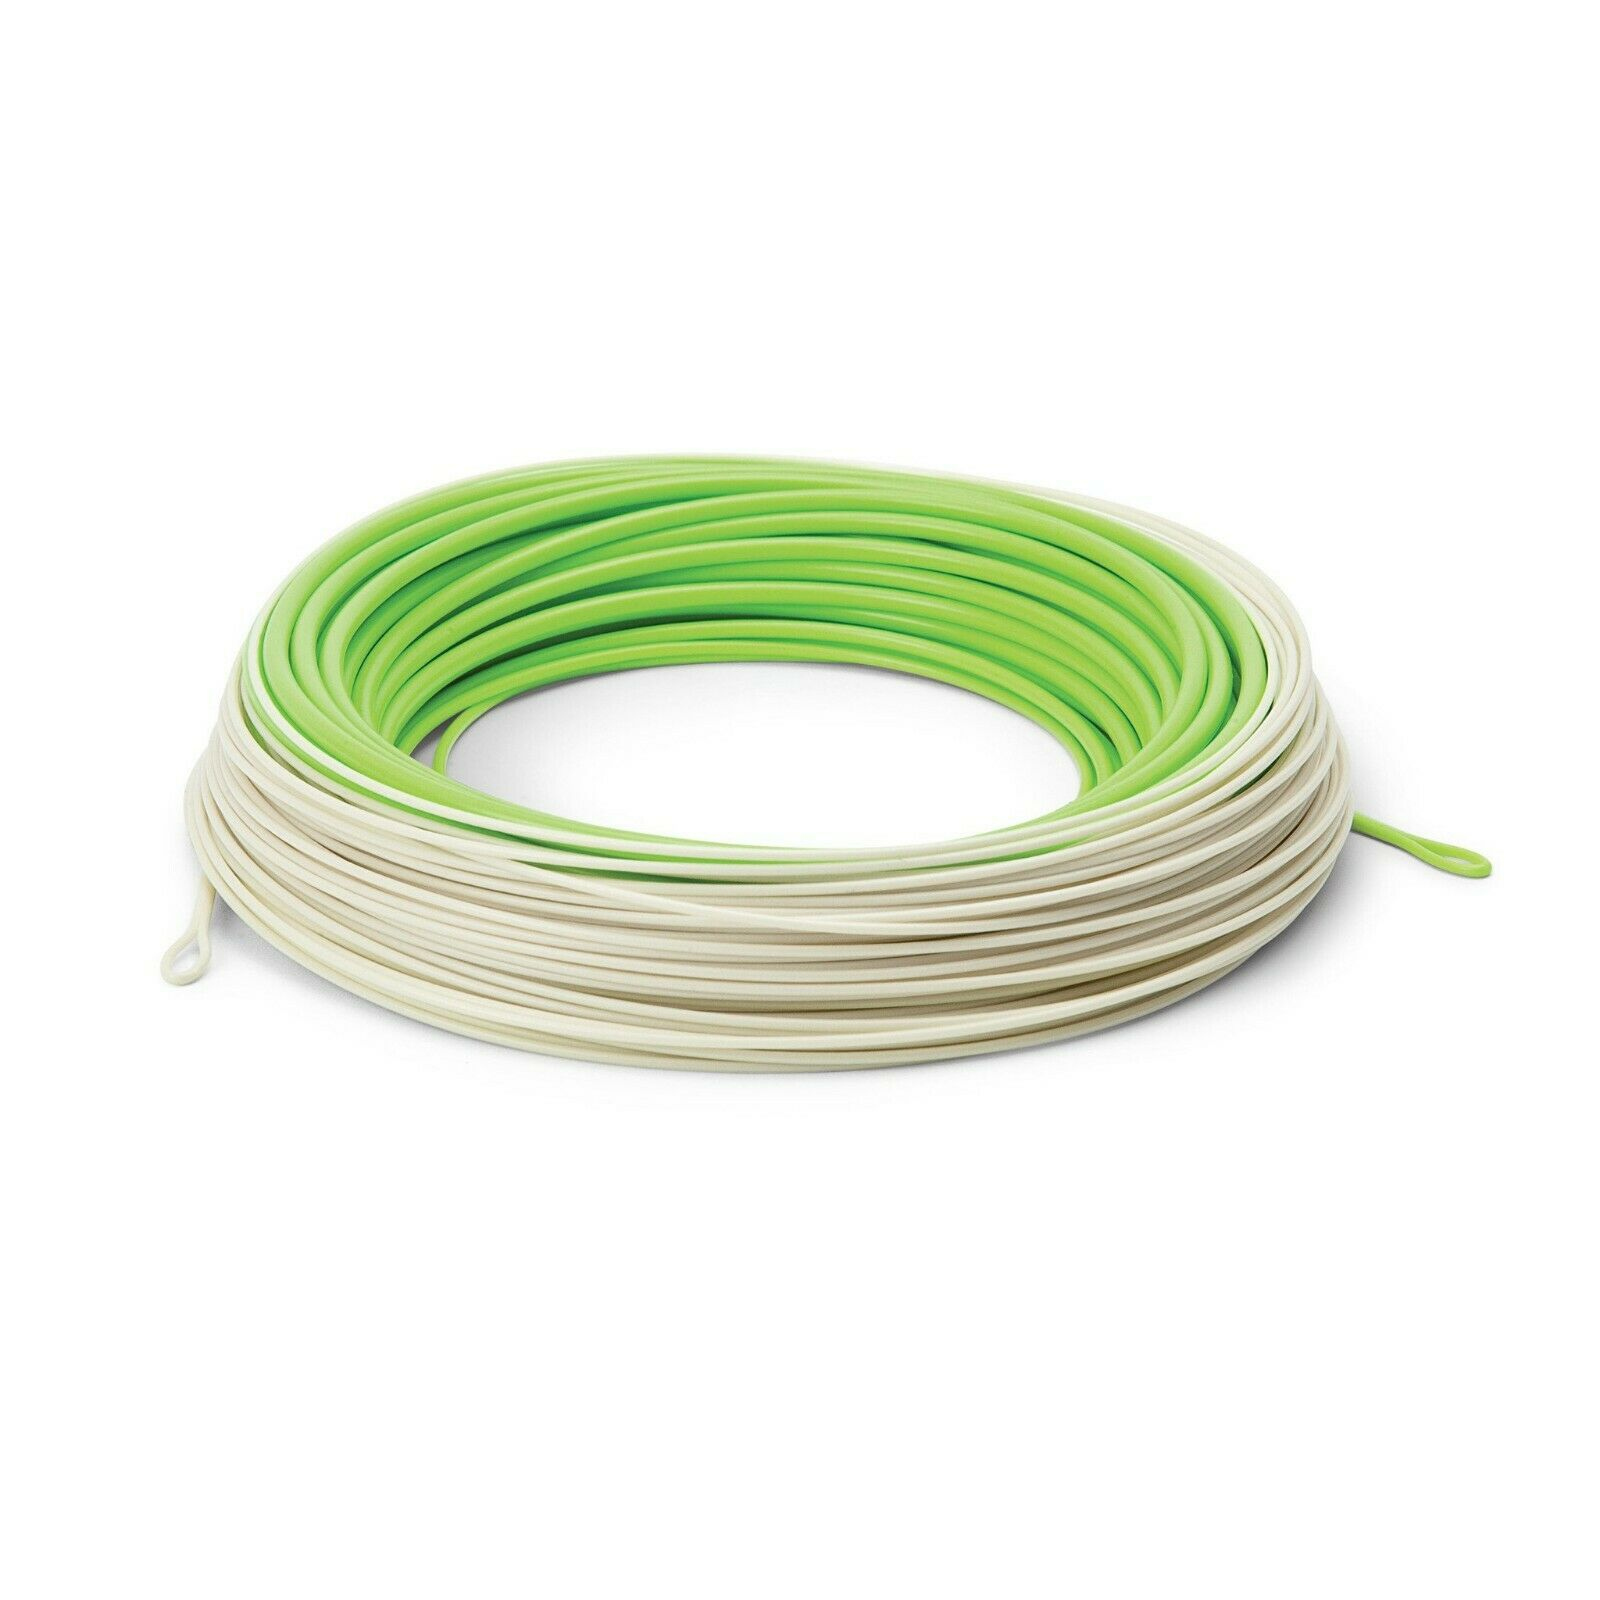 Cortland Precision Compact Switch Fly Line-Fly Line-WF8F - 485 Grain